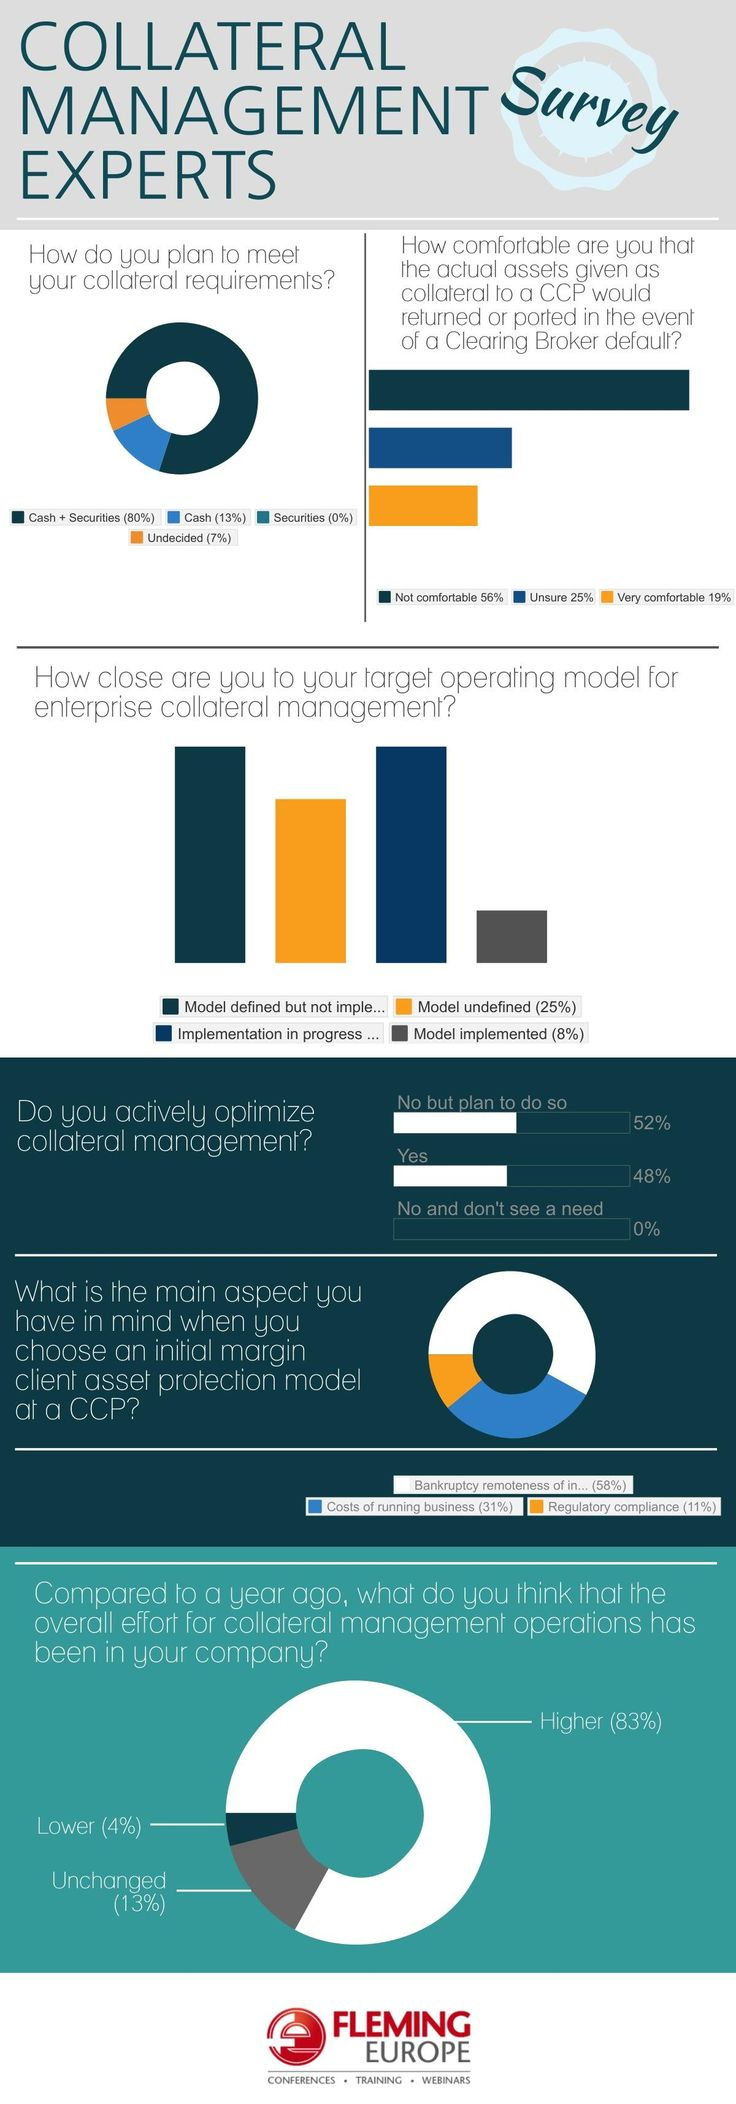 http://finance.flemingeurope.com/collateral-management-forum Collateral Management survey. The experts from the industry answered various questions during 8th Annual Collateral Management Forum.